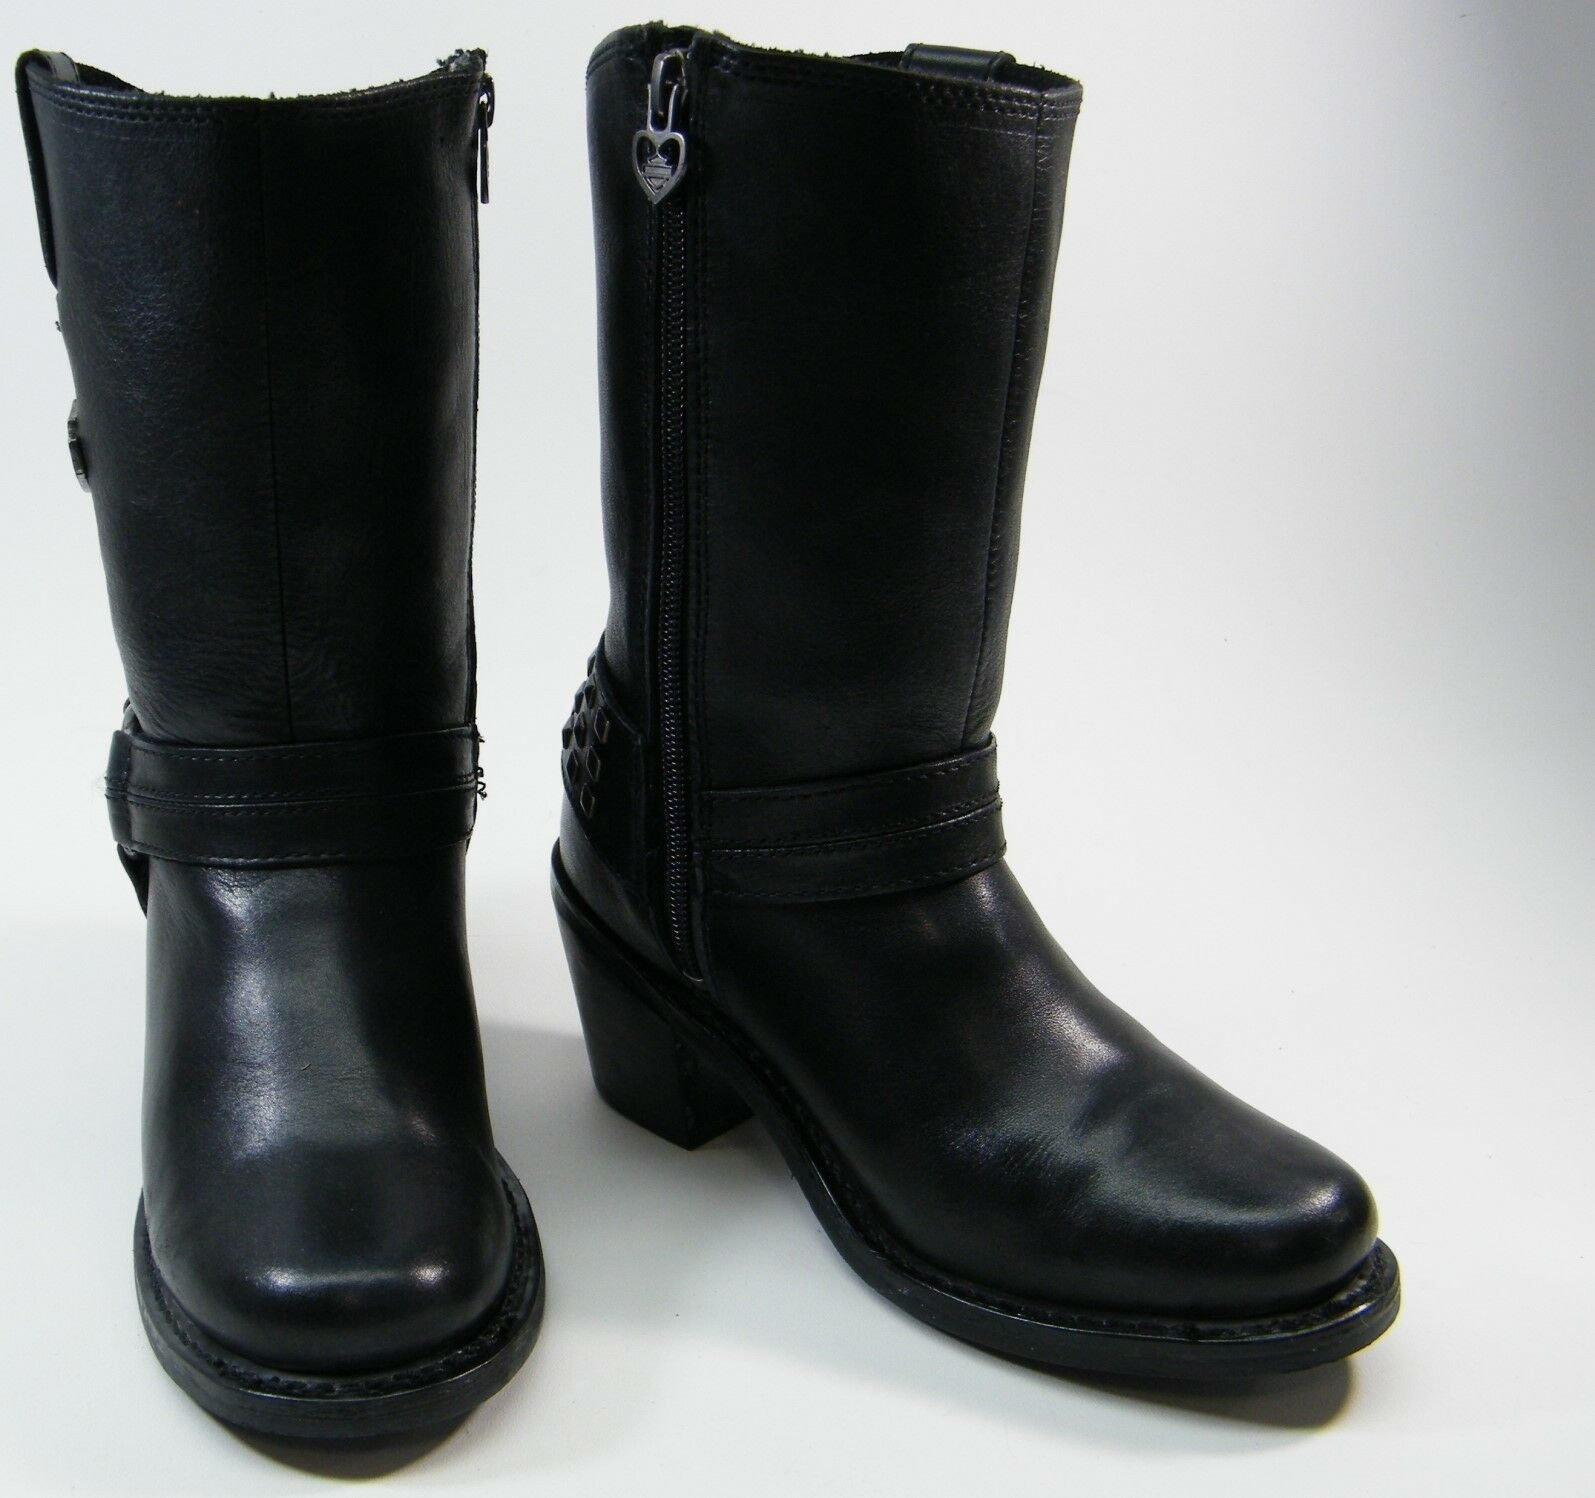 HARLEY DAVIDSON MYLIE 85161 BLK LEATHER MOTORCYCLE HARNESS ZIP STUDS BOOTS SZ 6